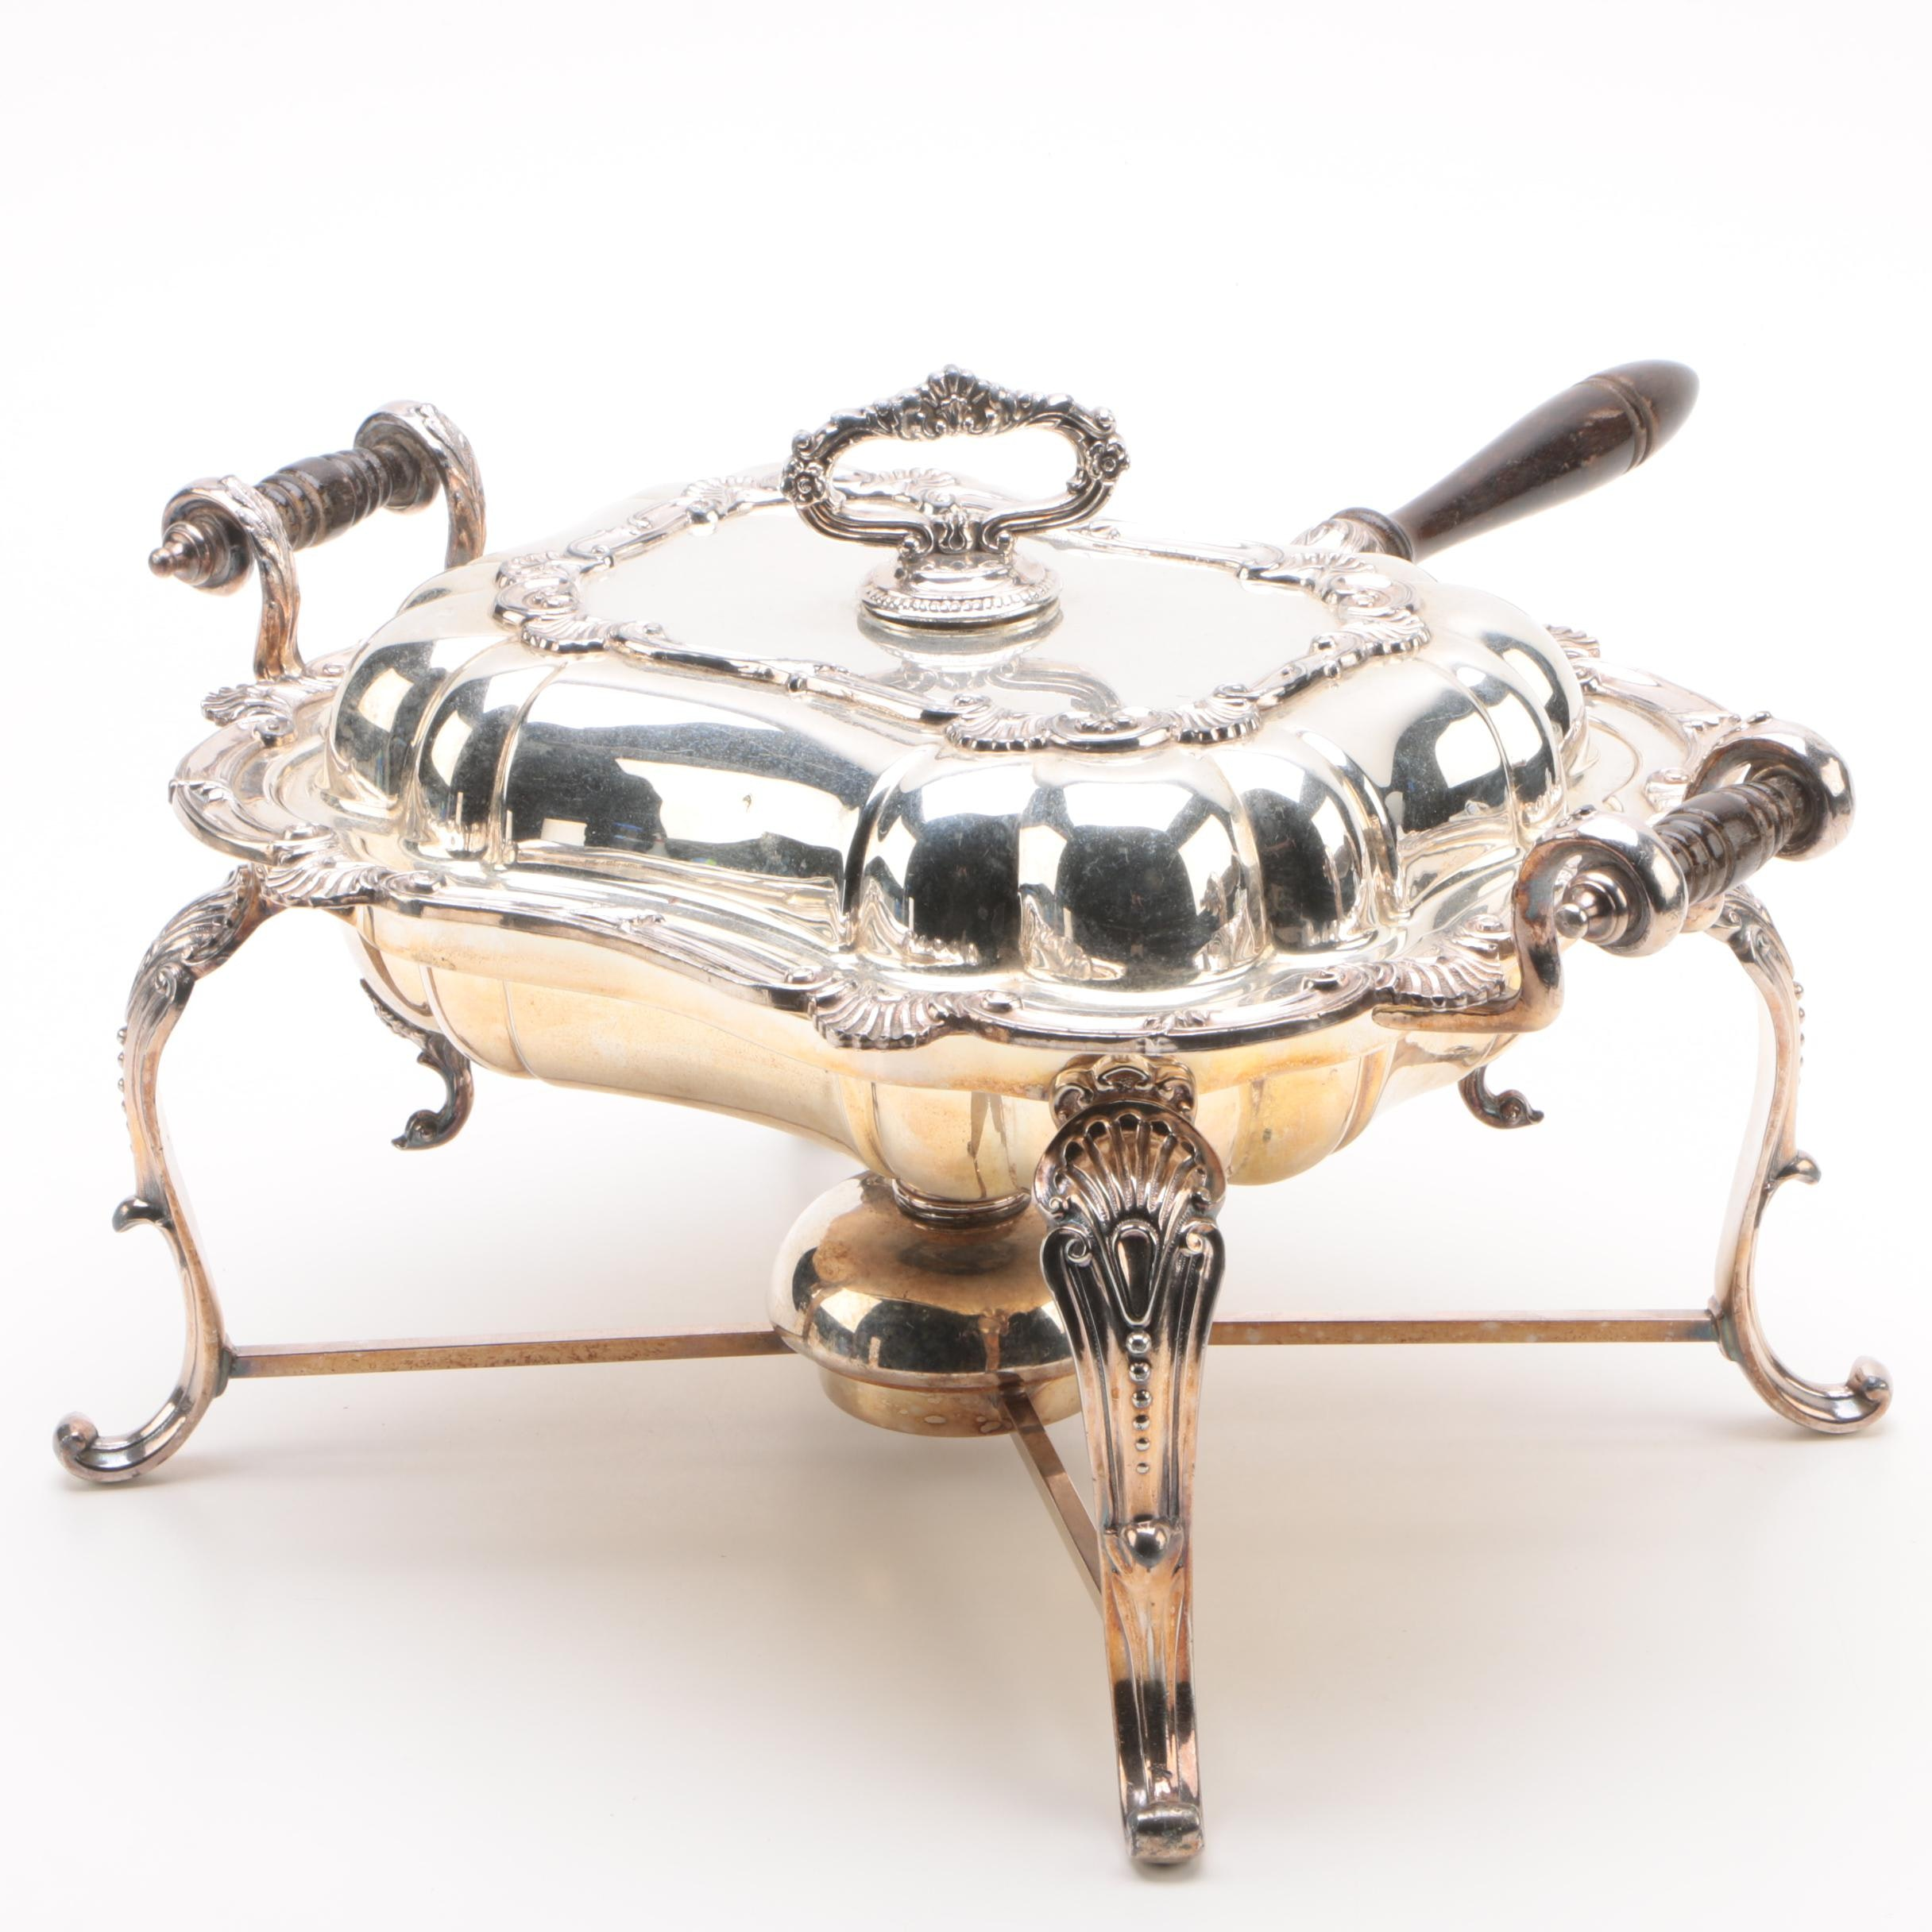 Birmingham Silver Co. Silver Plate Chafing Dish with Warming Stand